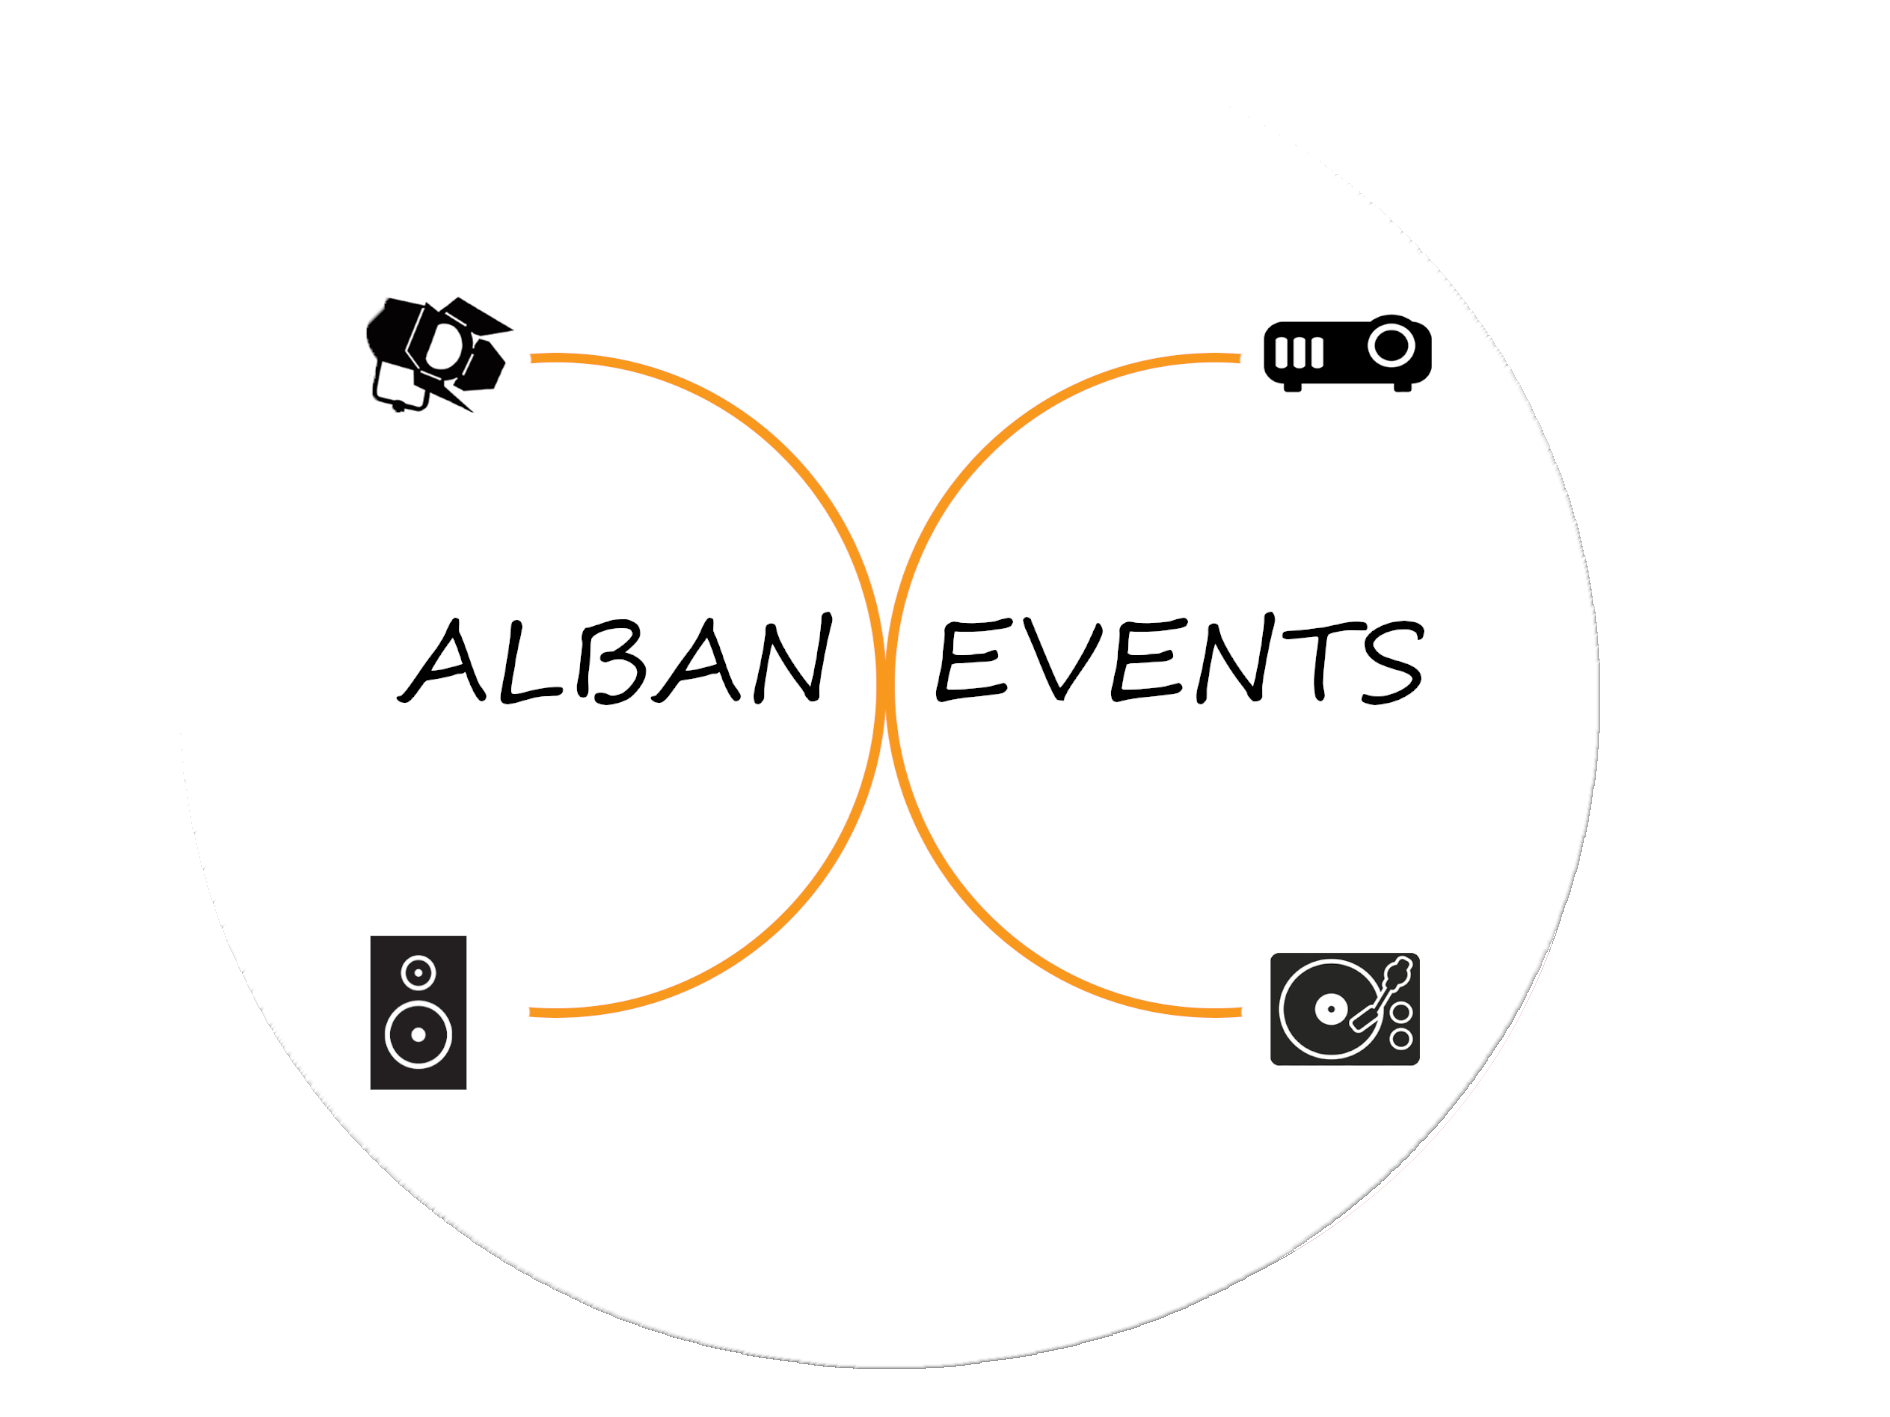 ALBAN EVENTS